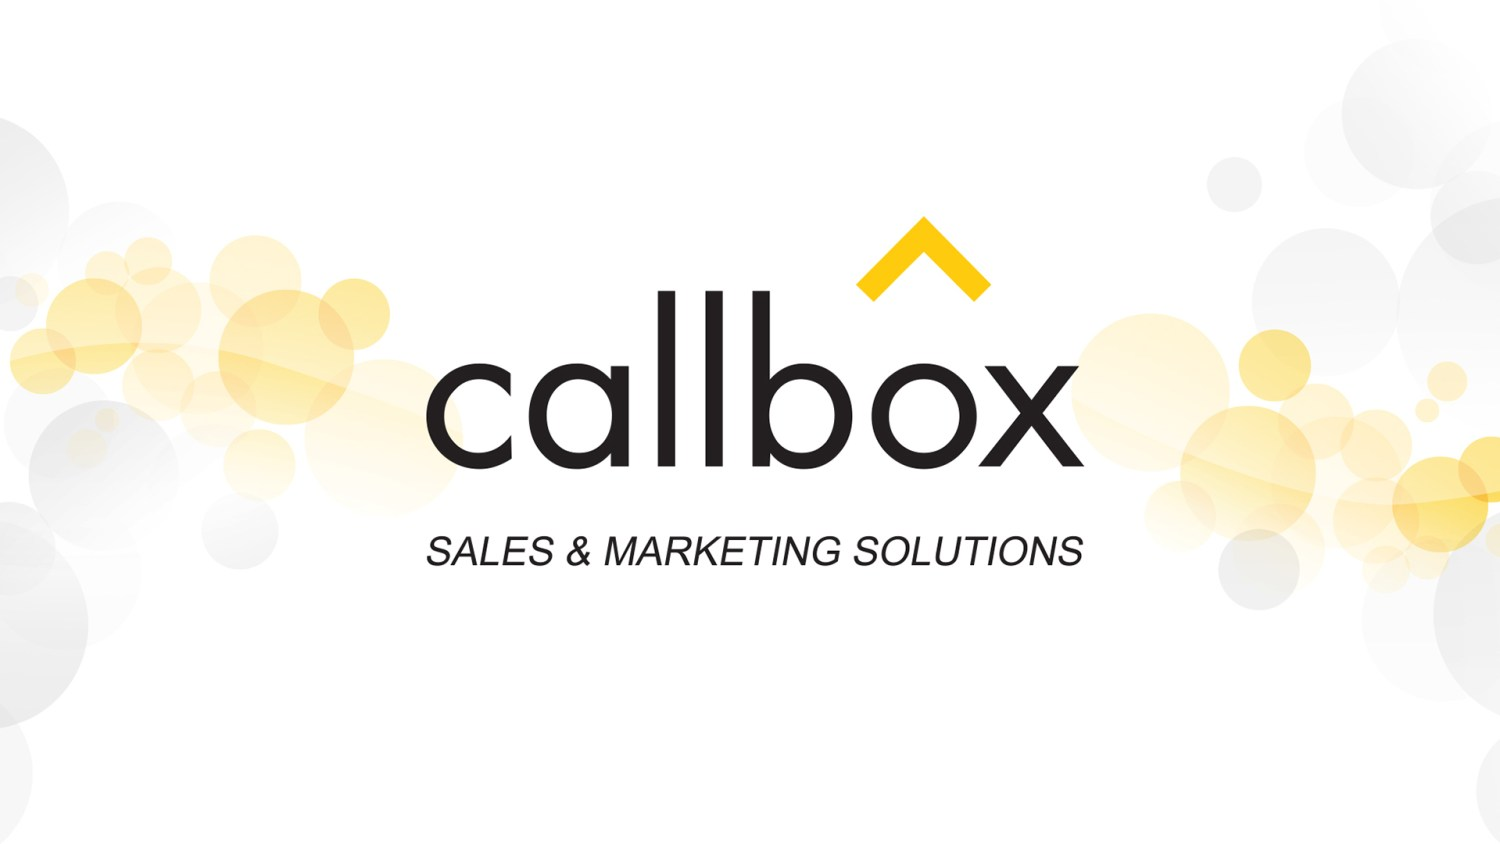 Callbox Videos - Lead Generation and Marketing Tips